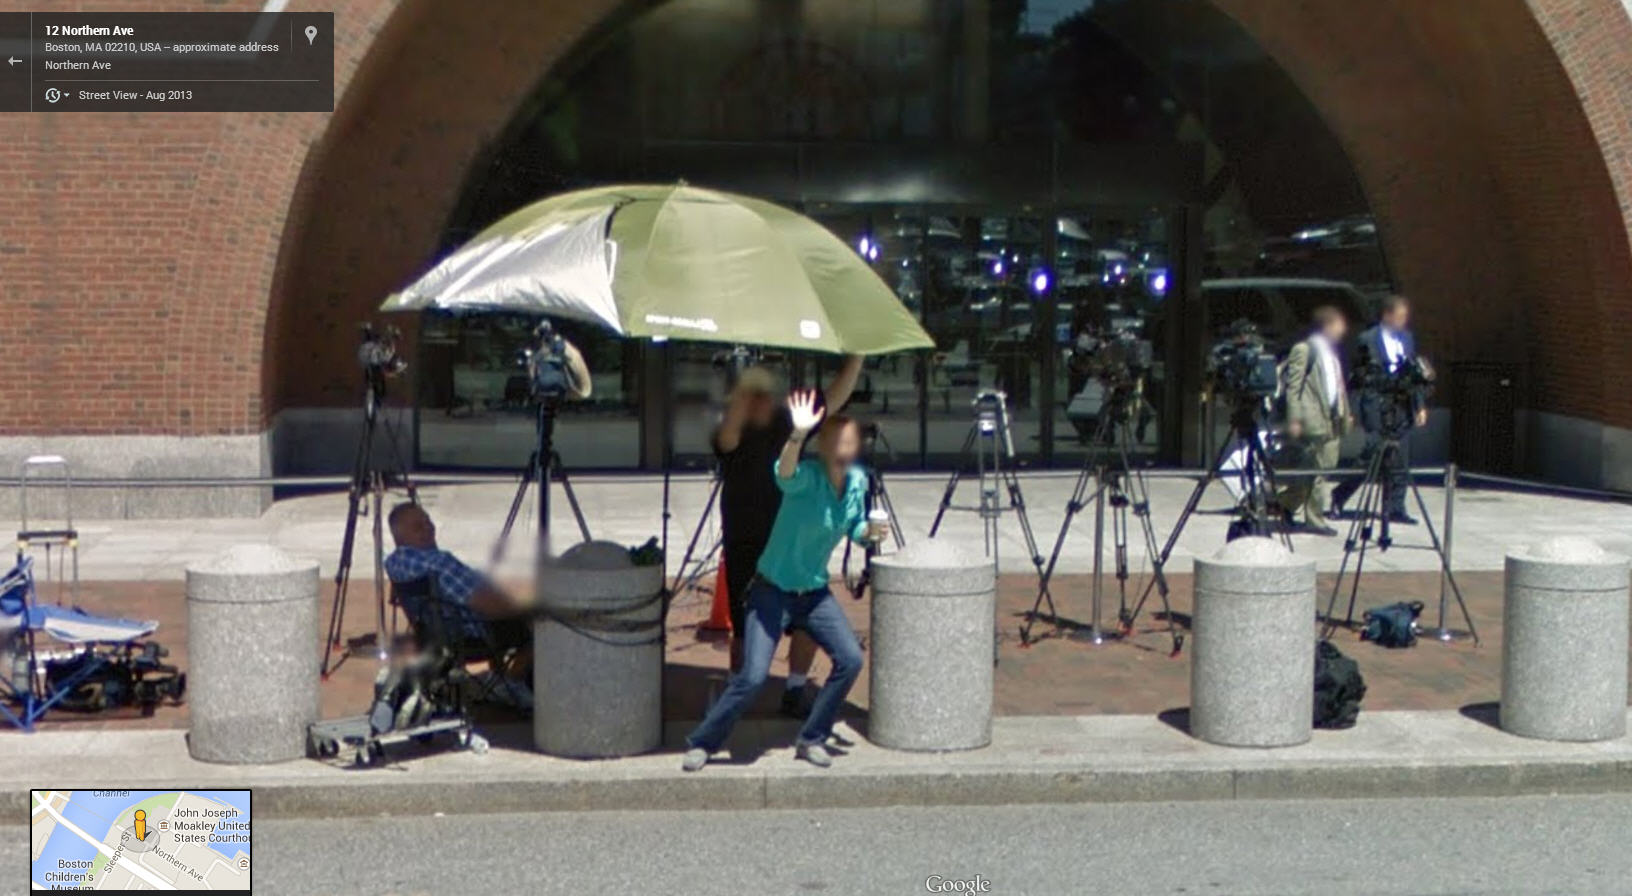 Google Street View Captures Some Bored Reporters at the Bulger trial in Boston